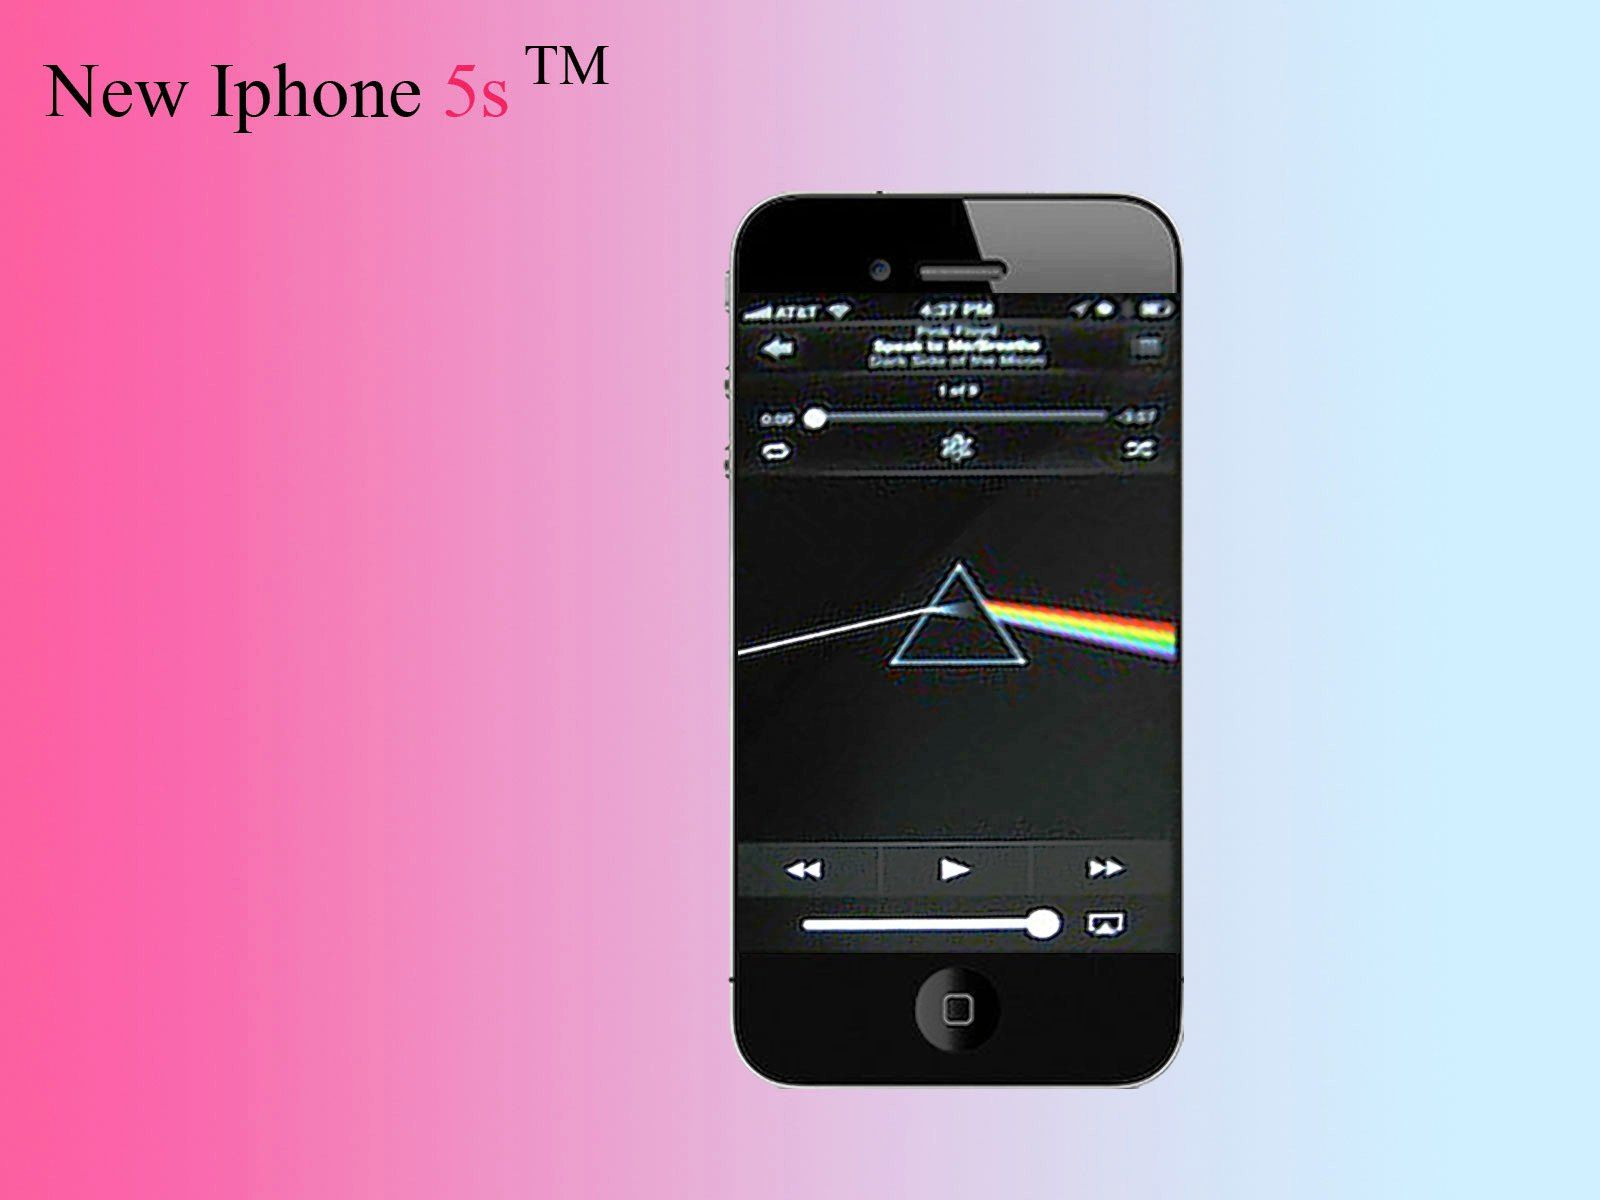 iphone 5s The news circulating that Apple will be launching a new product namely smartphone